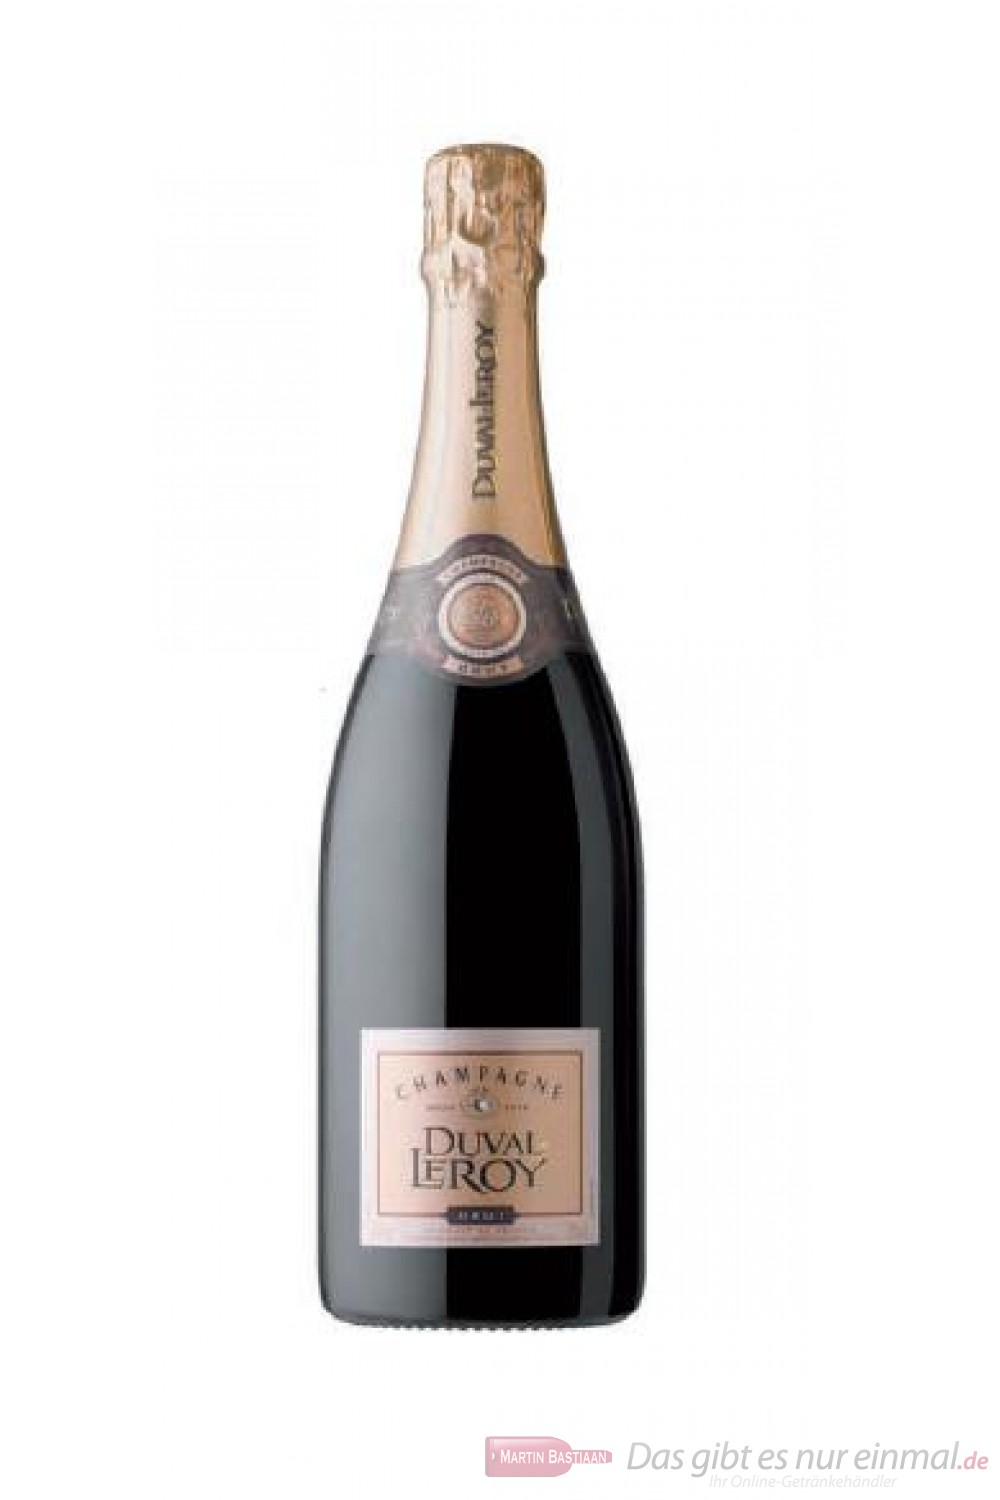 Duval Leroy Champagner Brut 12 % 0,75l Flasche